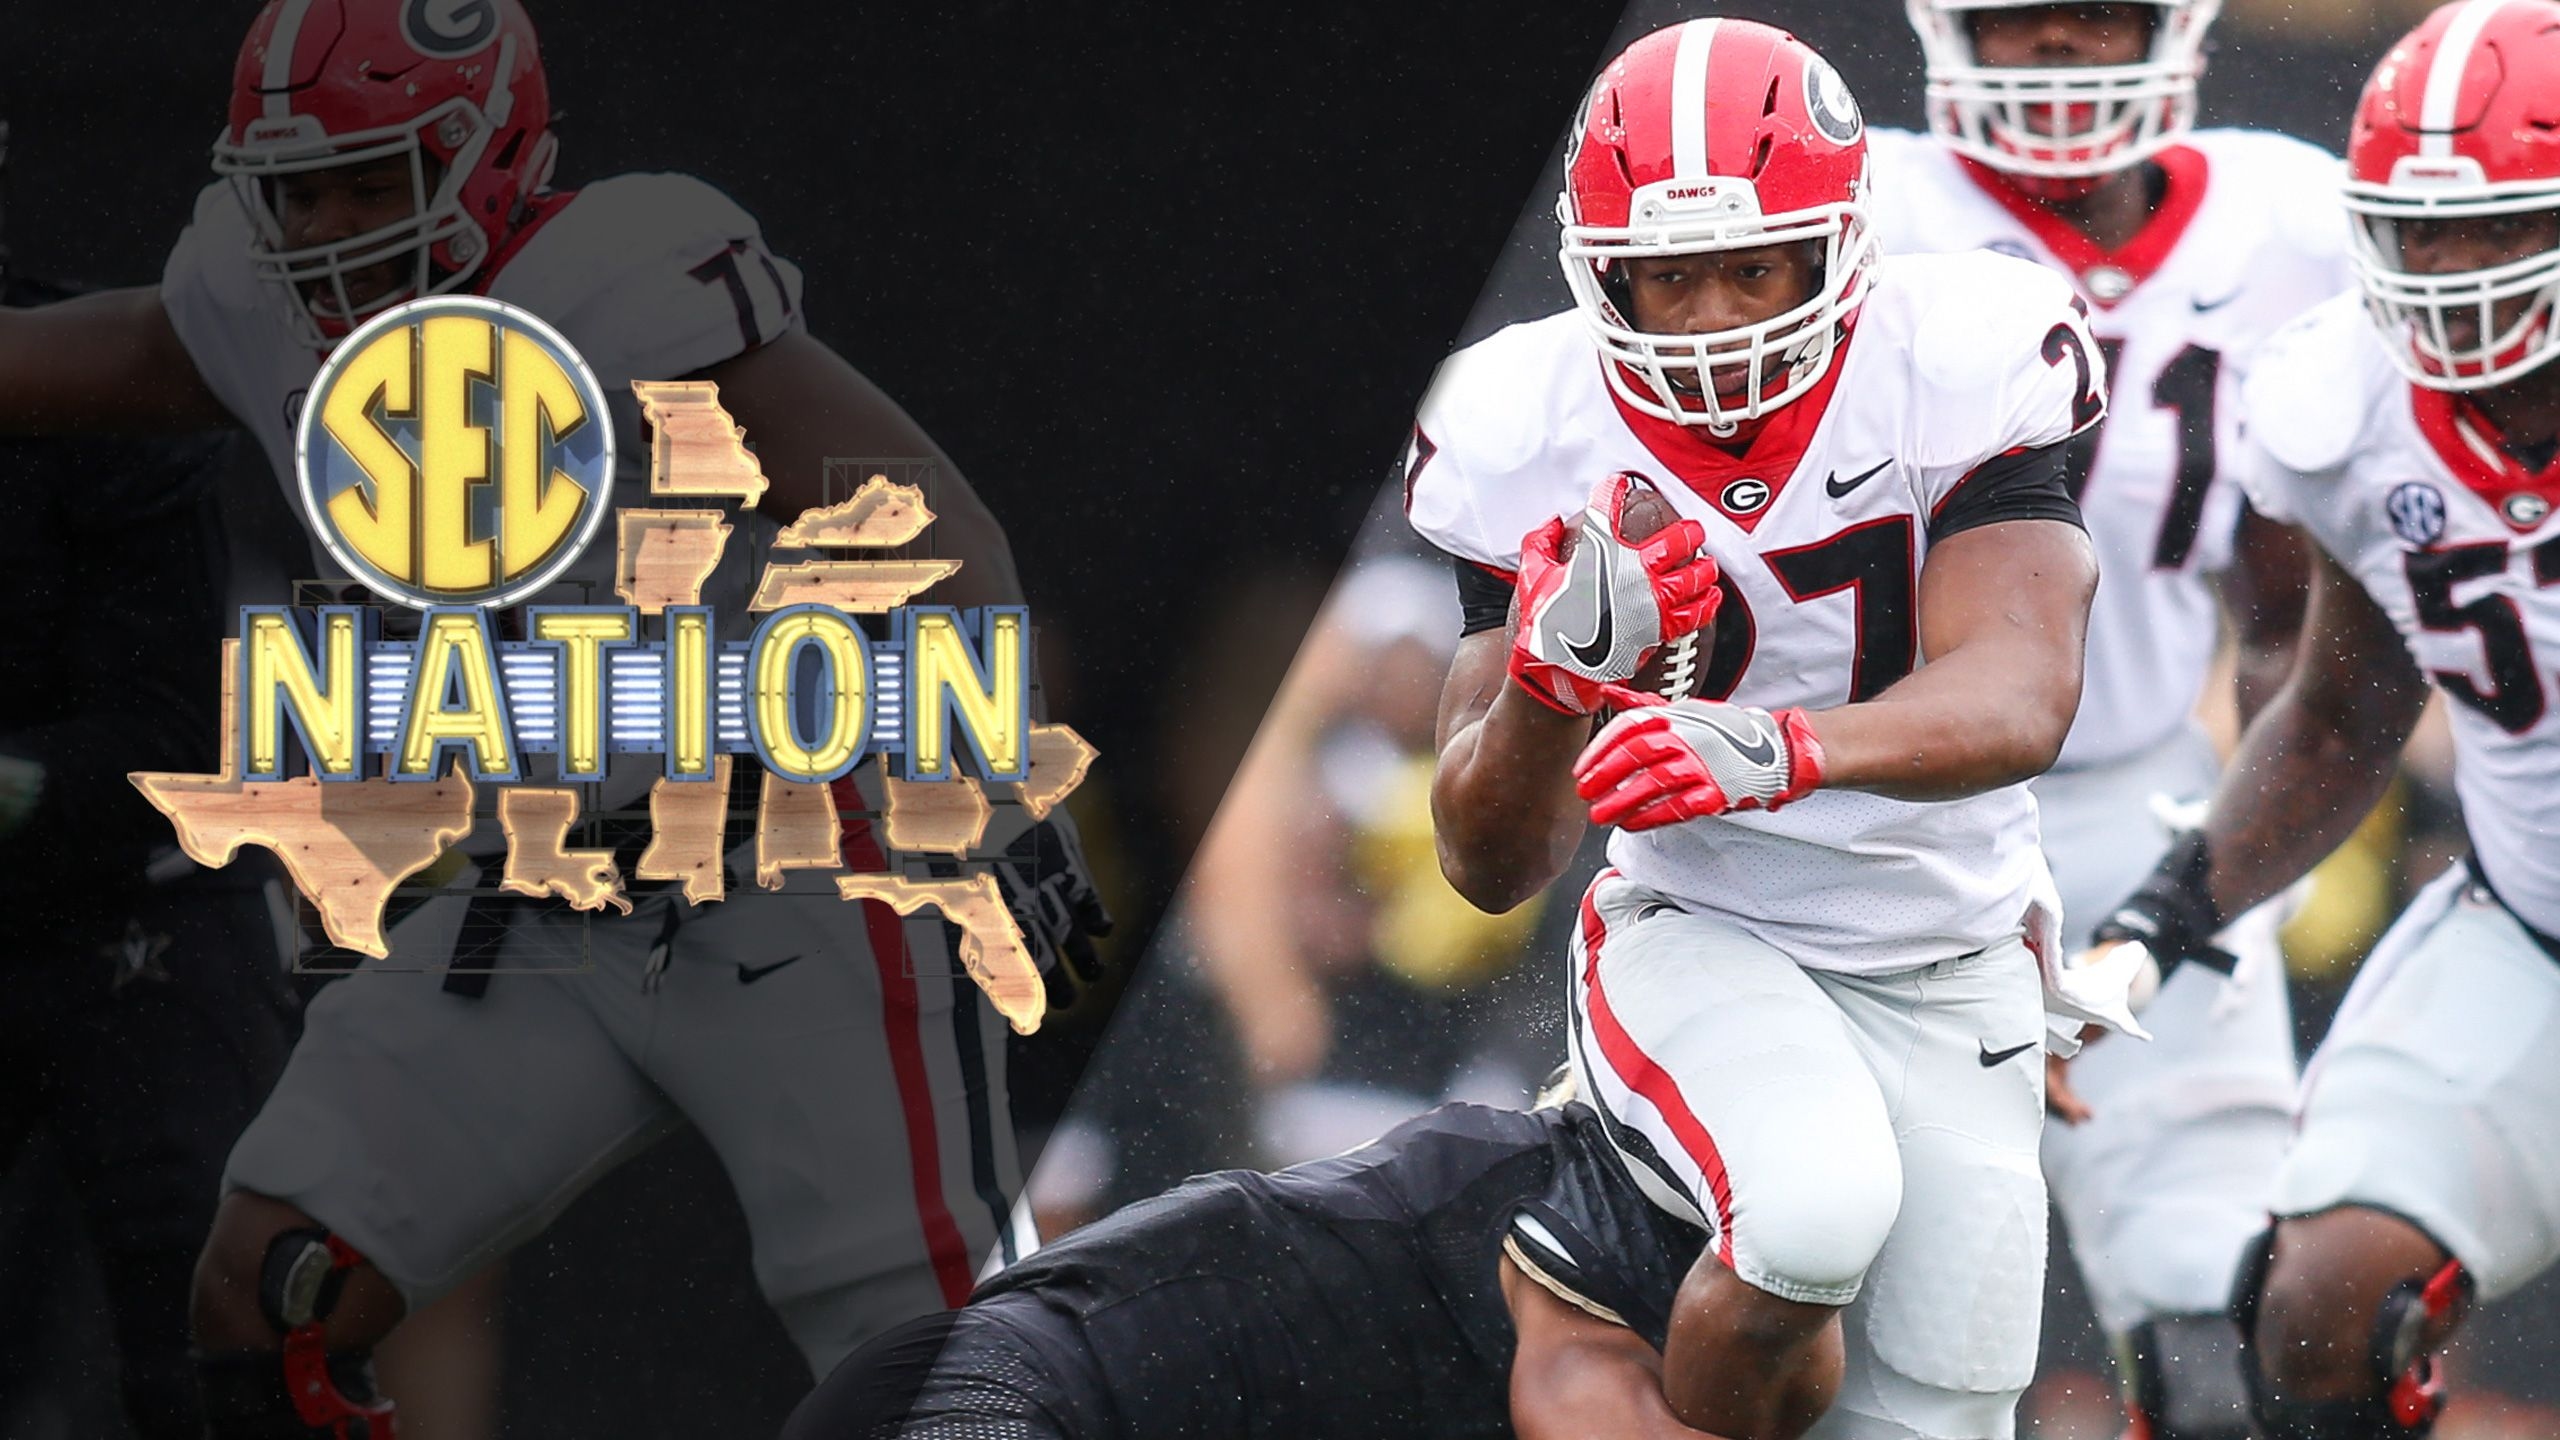 Sat, 11/18 - SEC Nation Presented by Regions Bank